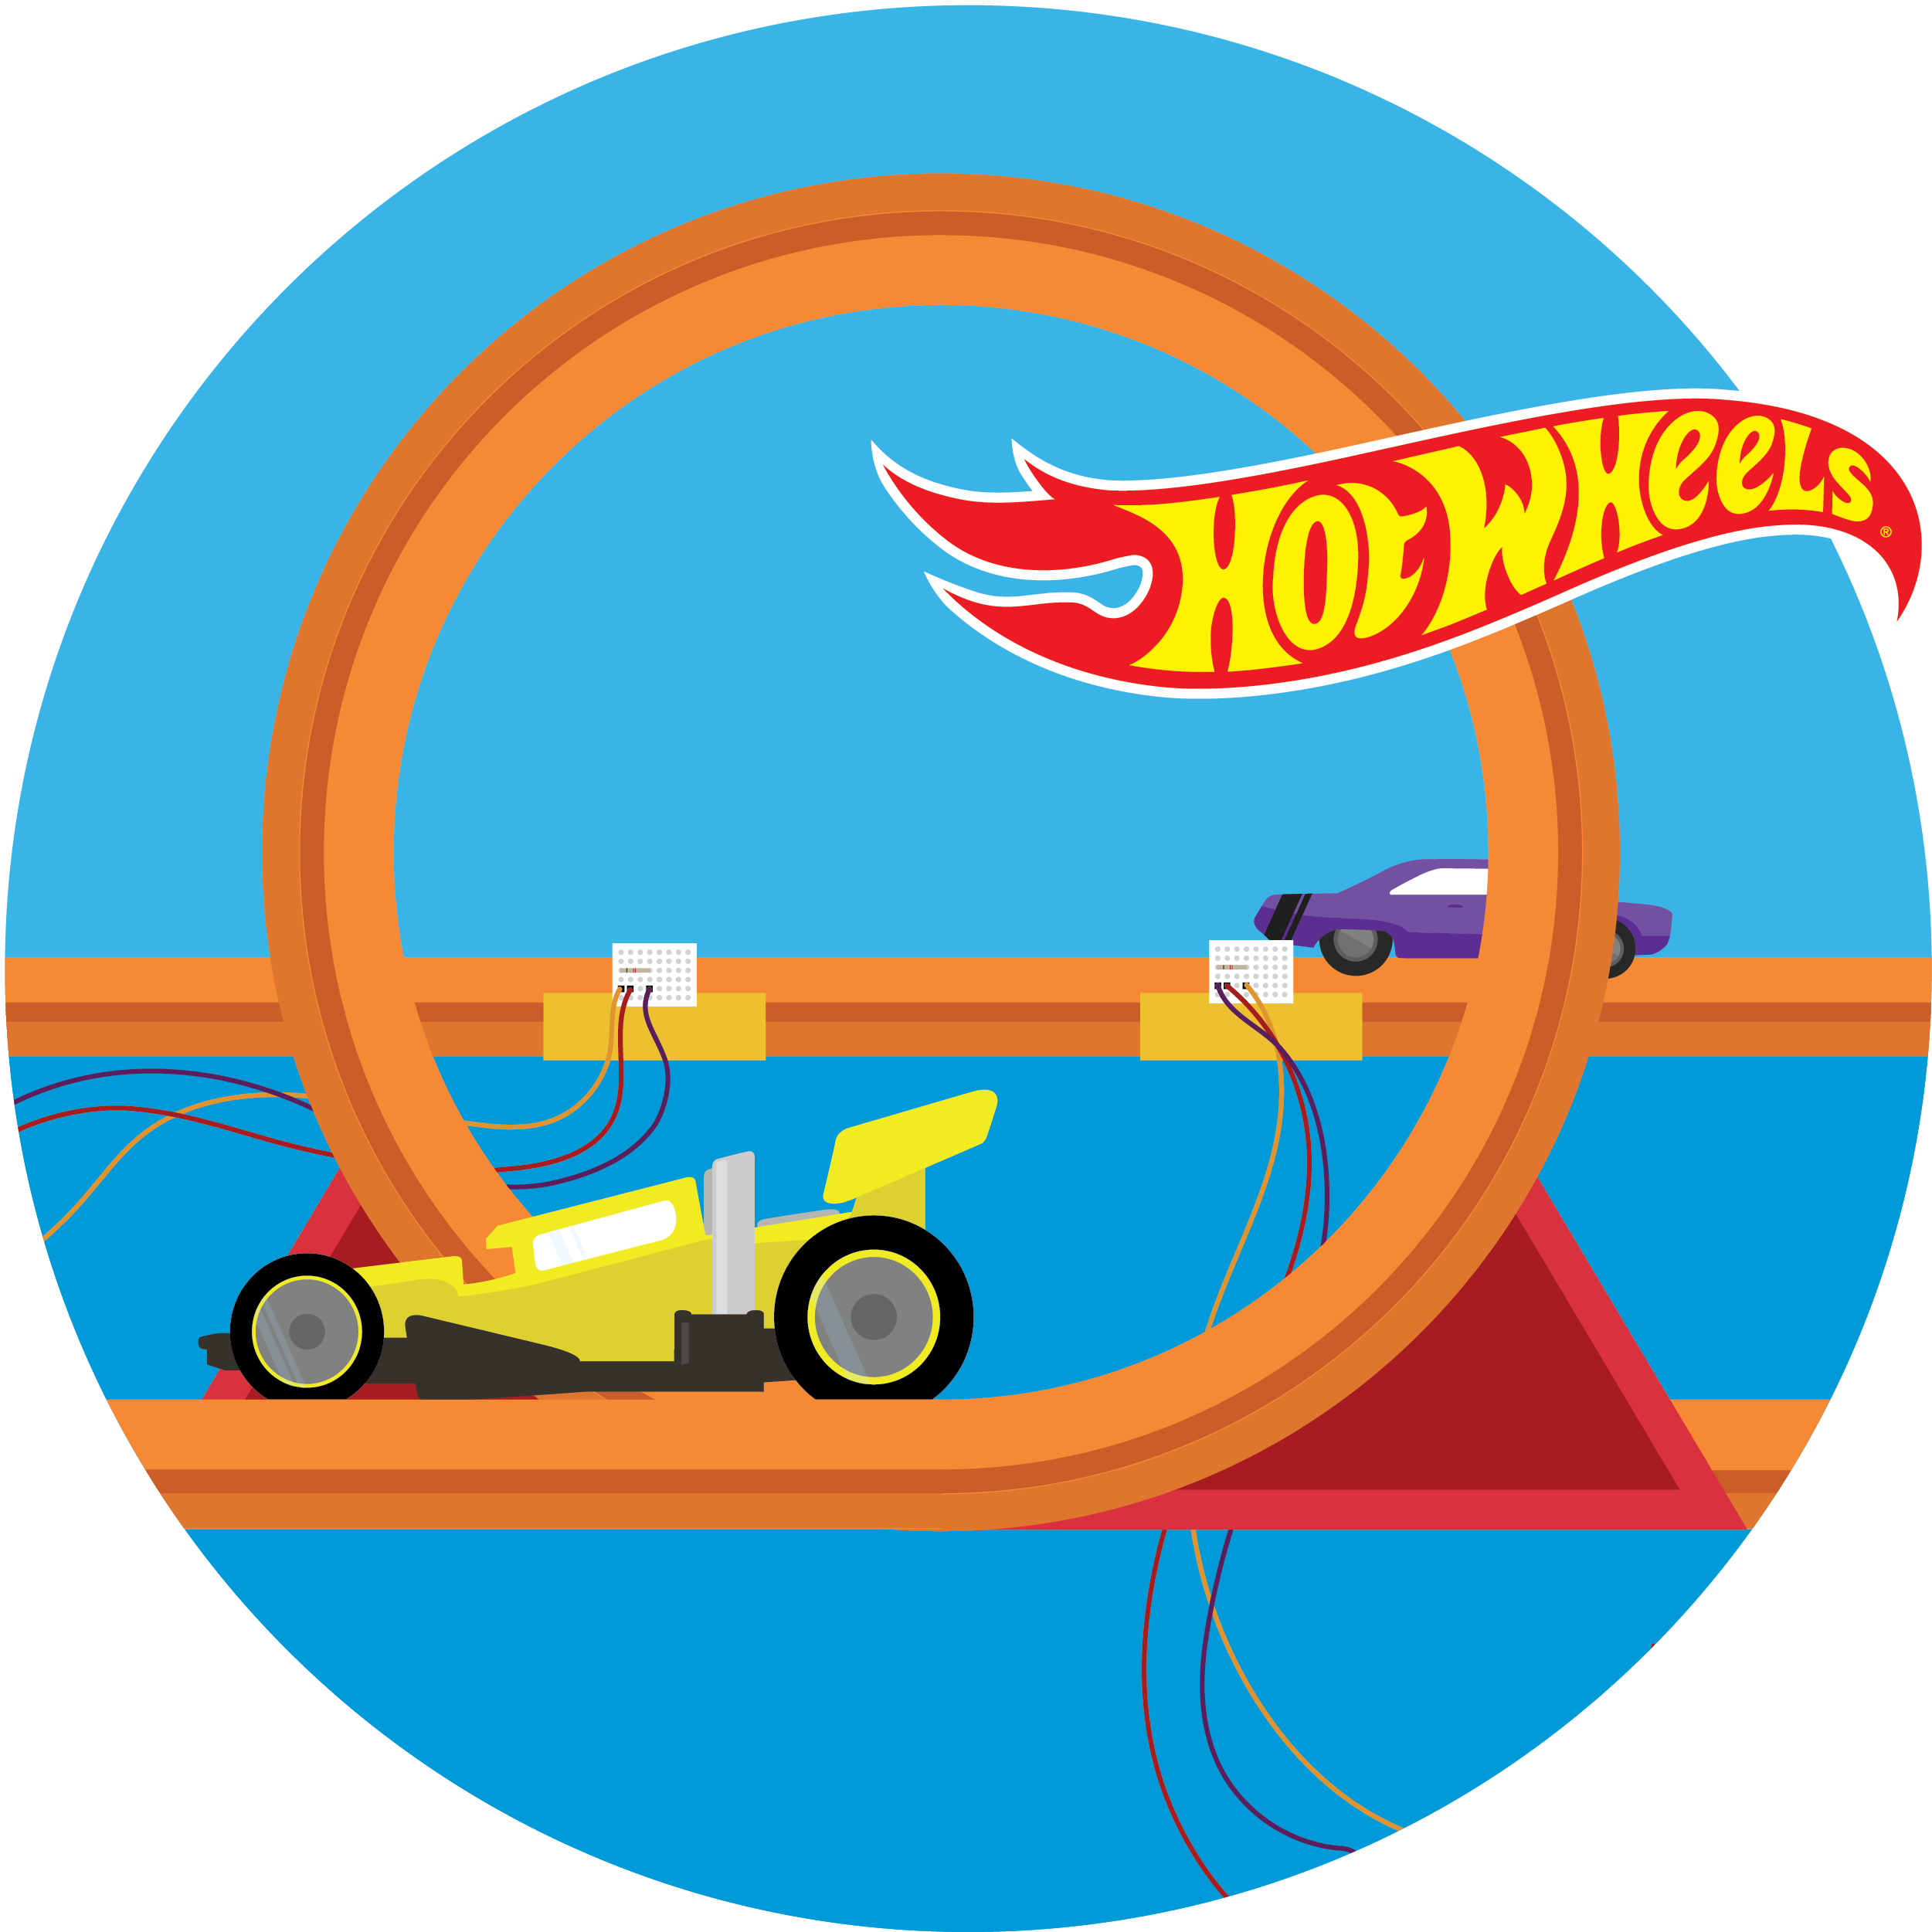 Circular illustration of a light gate being used along with Hot Wheels® track and cars.